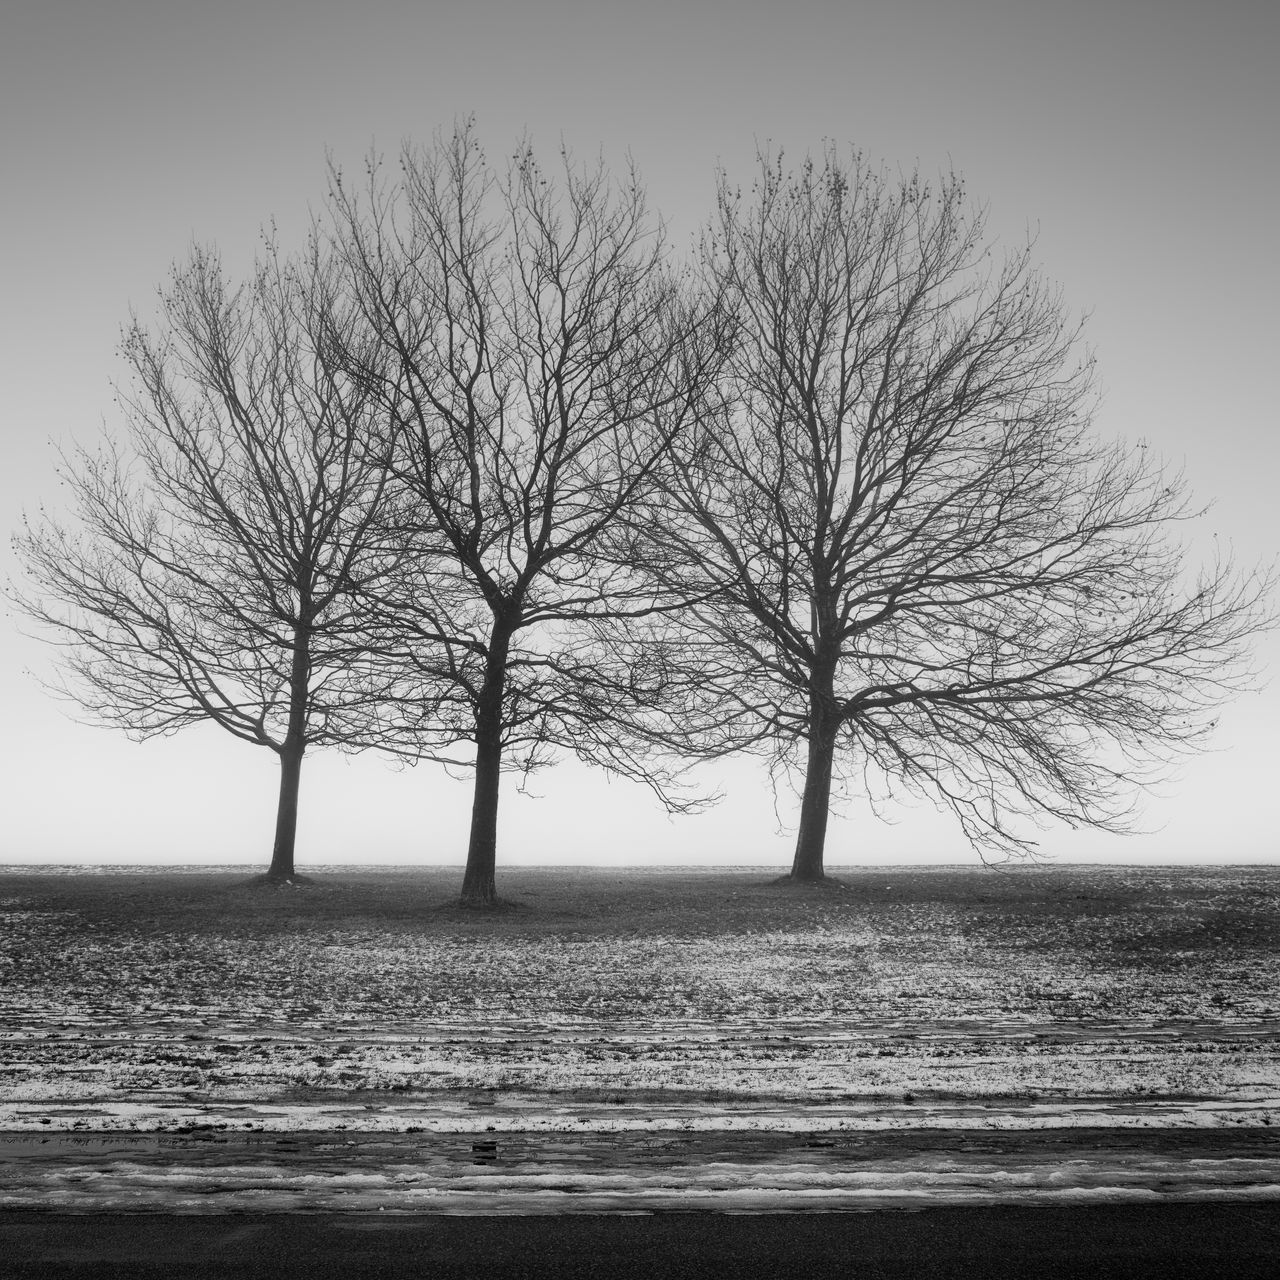 three barren trees on the tempelhofer field in berlin Bare Tree Beach Beauty In Nature Berlin Black And White Day Fine Art Germany Horizon Over Water Landscape Long Exposure Nature No People Outdoors Philipp Dase Scenics Sea Sky Tempelhofer Feld Three Trees Tranquil Scene Tree Water Winter Winter Trees